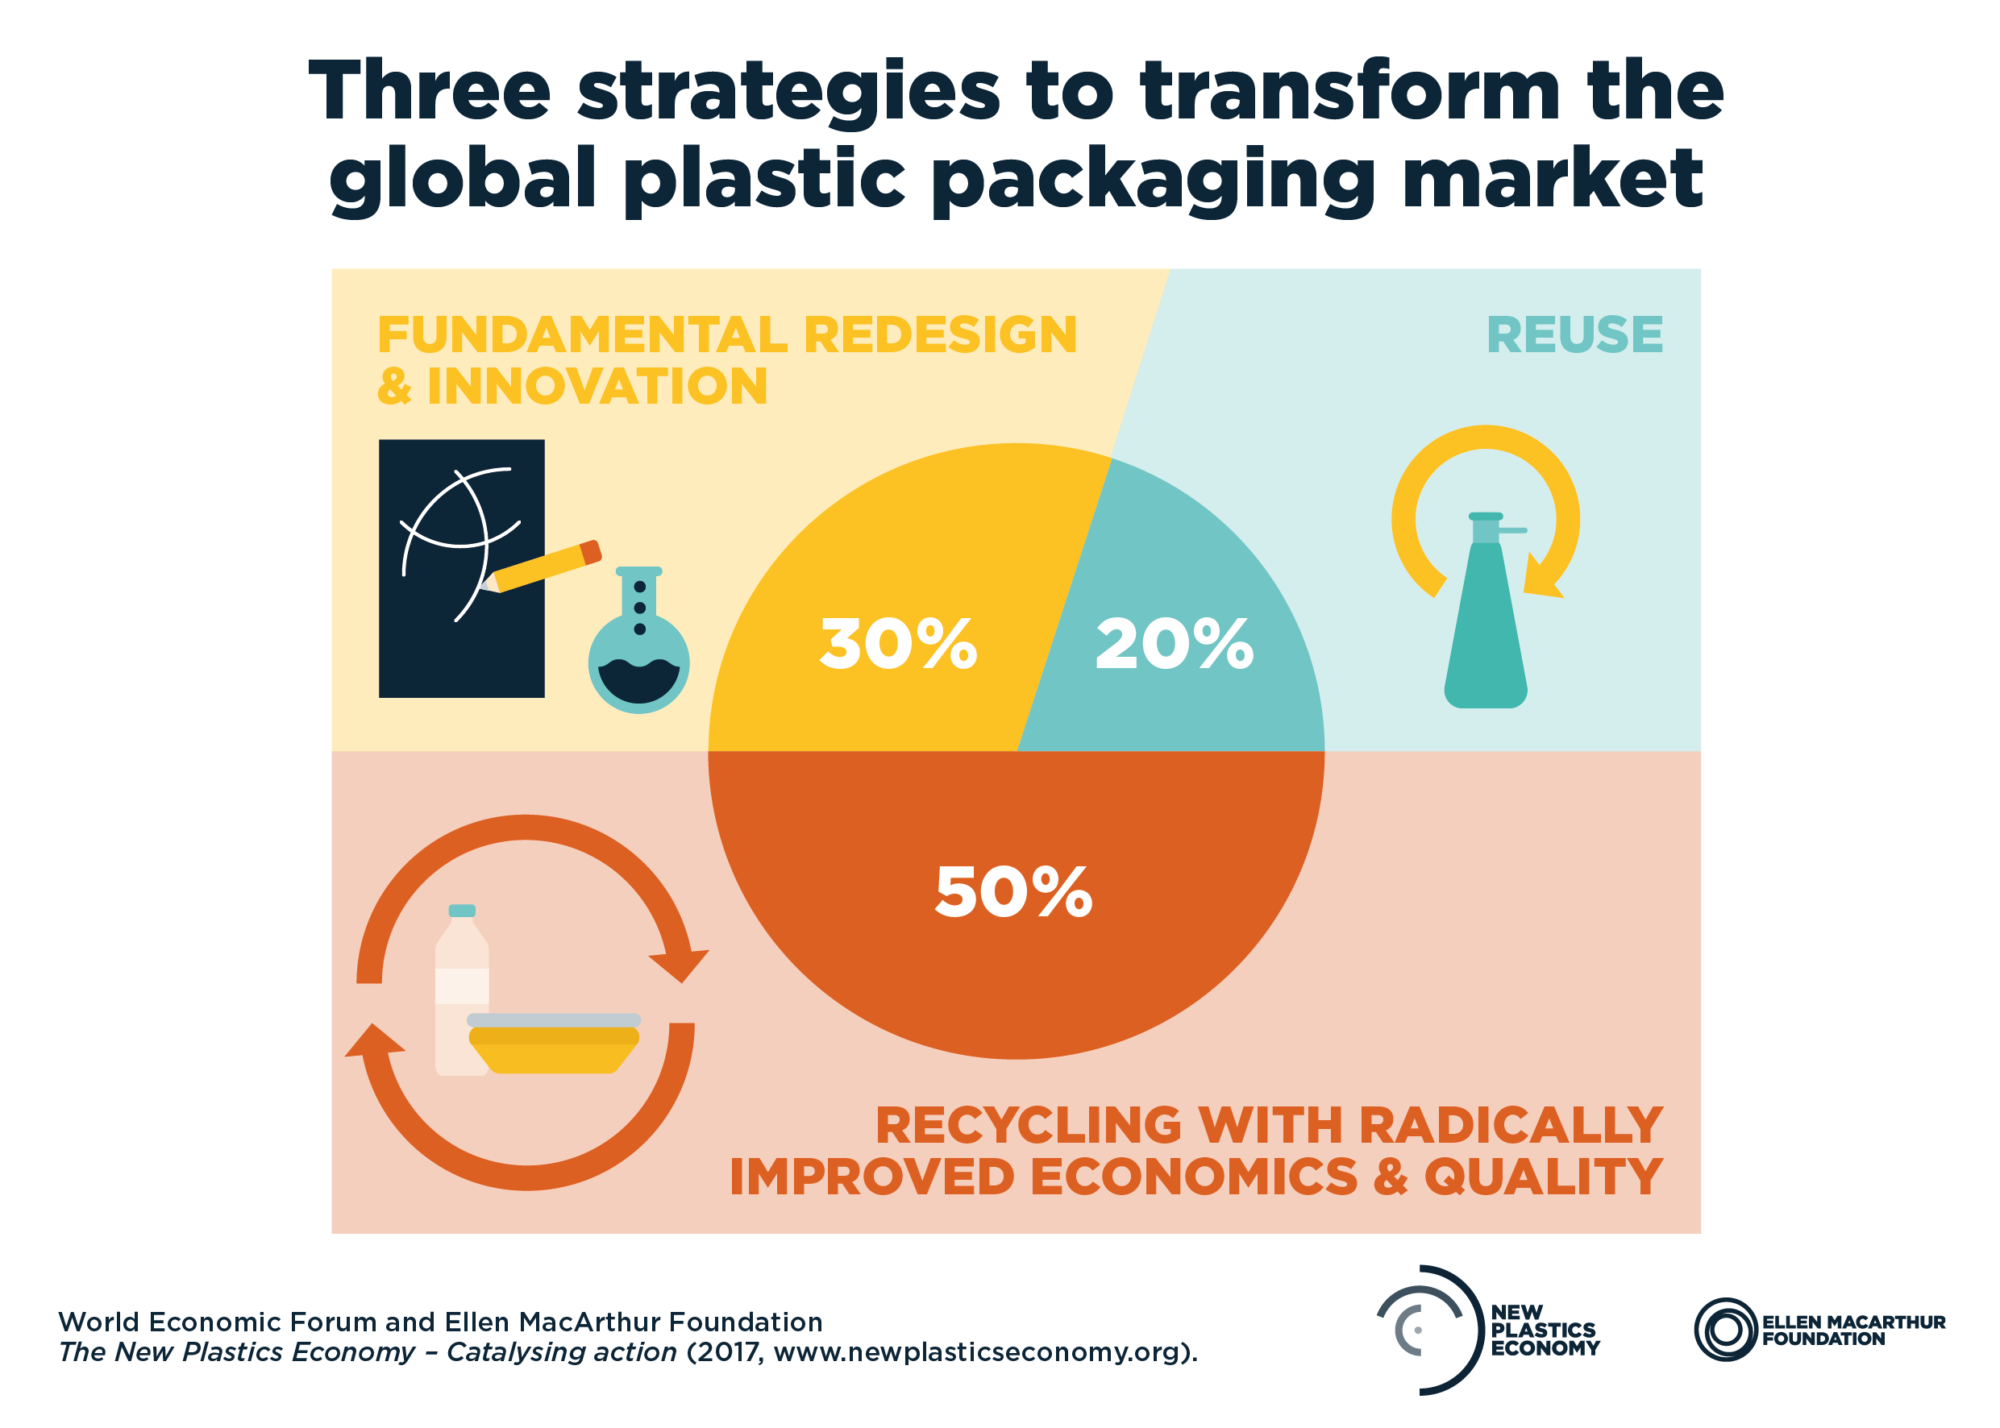 plastics pollution plastic economy waste environment circular economy